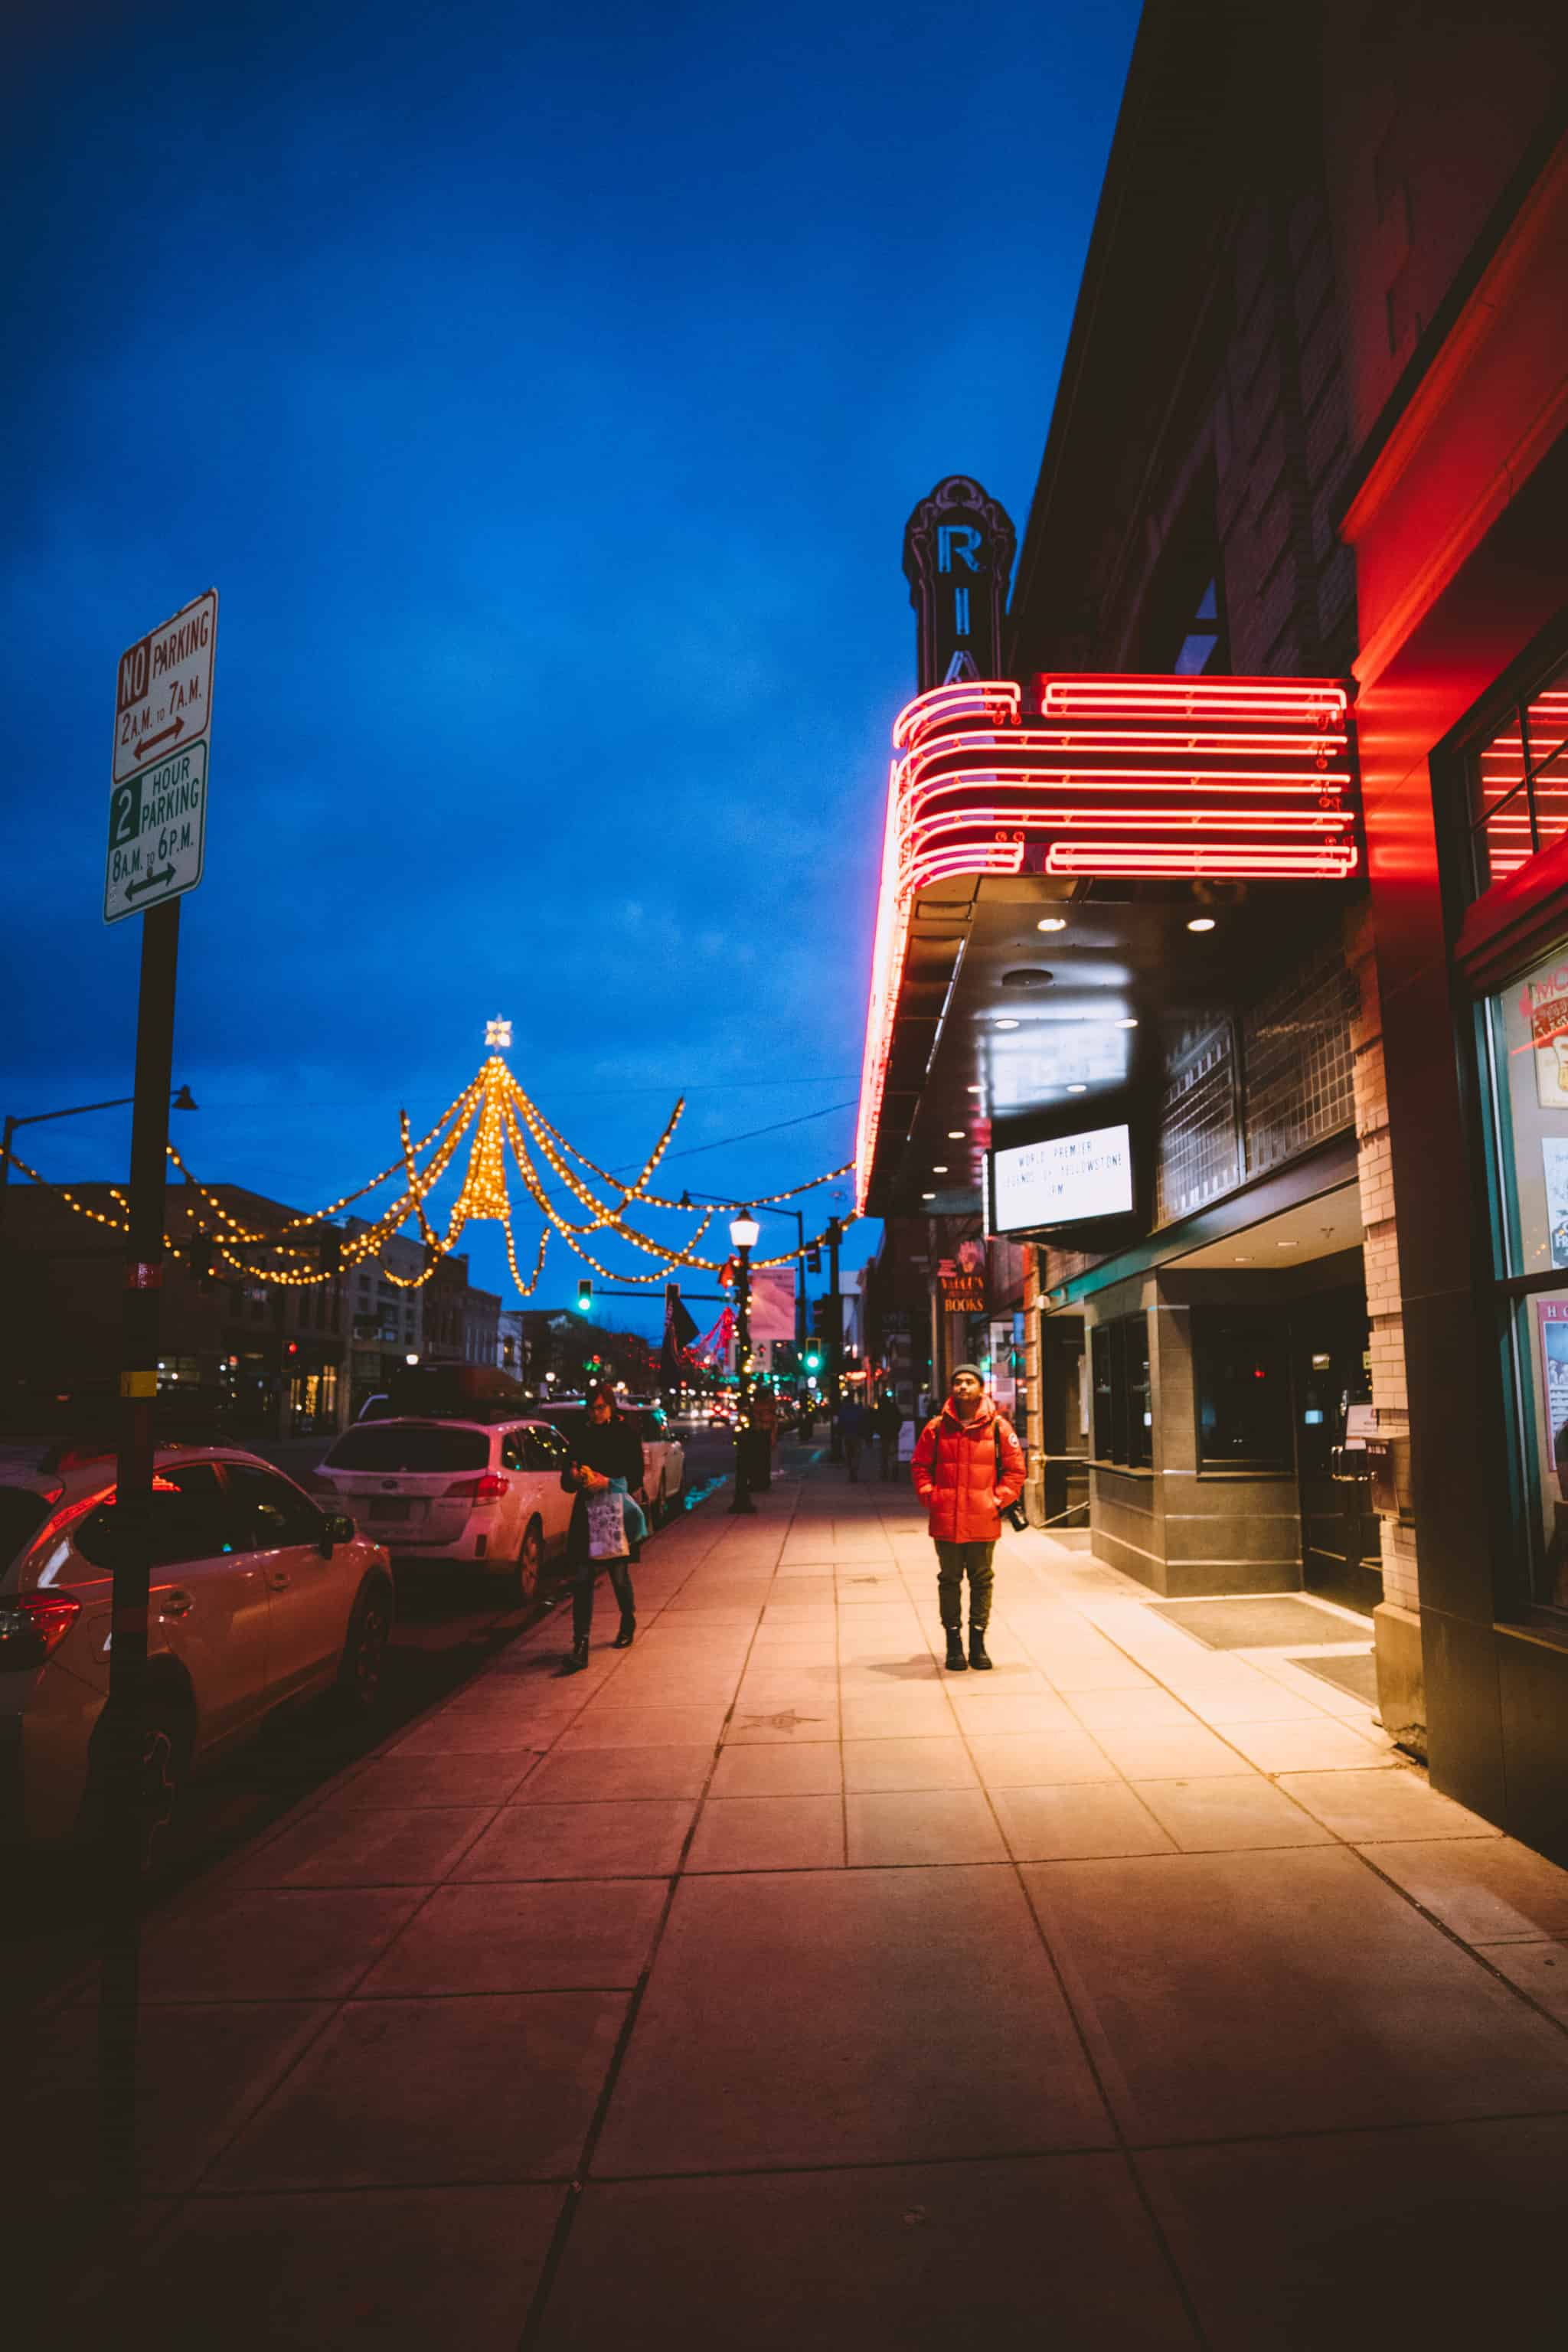 Berty Mandagie standing under Rialto Bozeman lights - TheMandagies.com